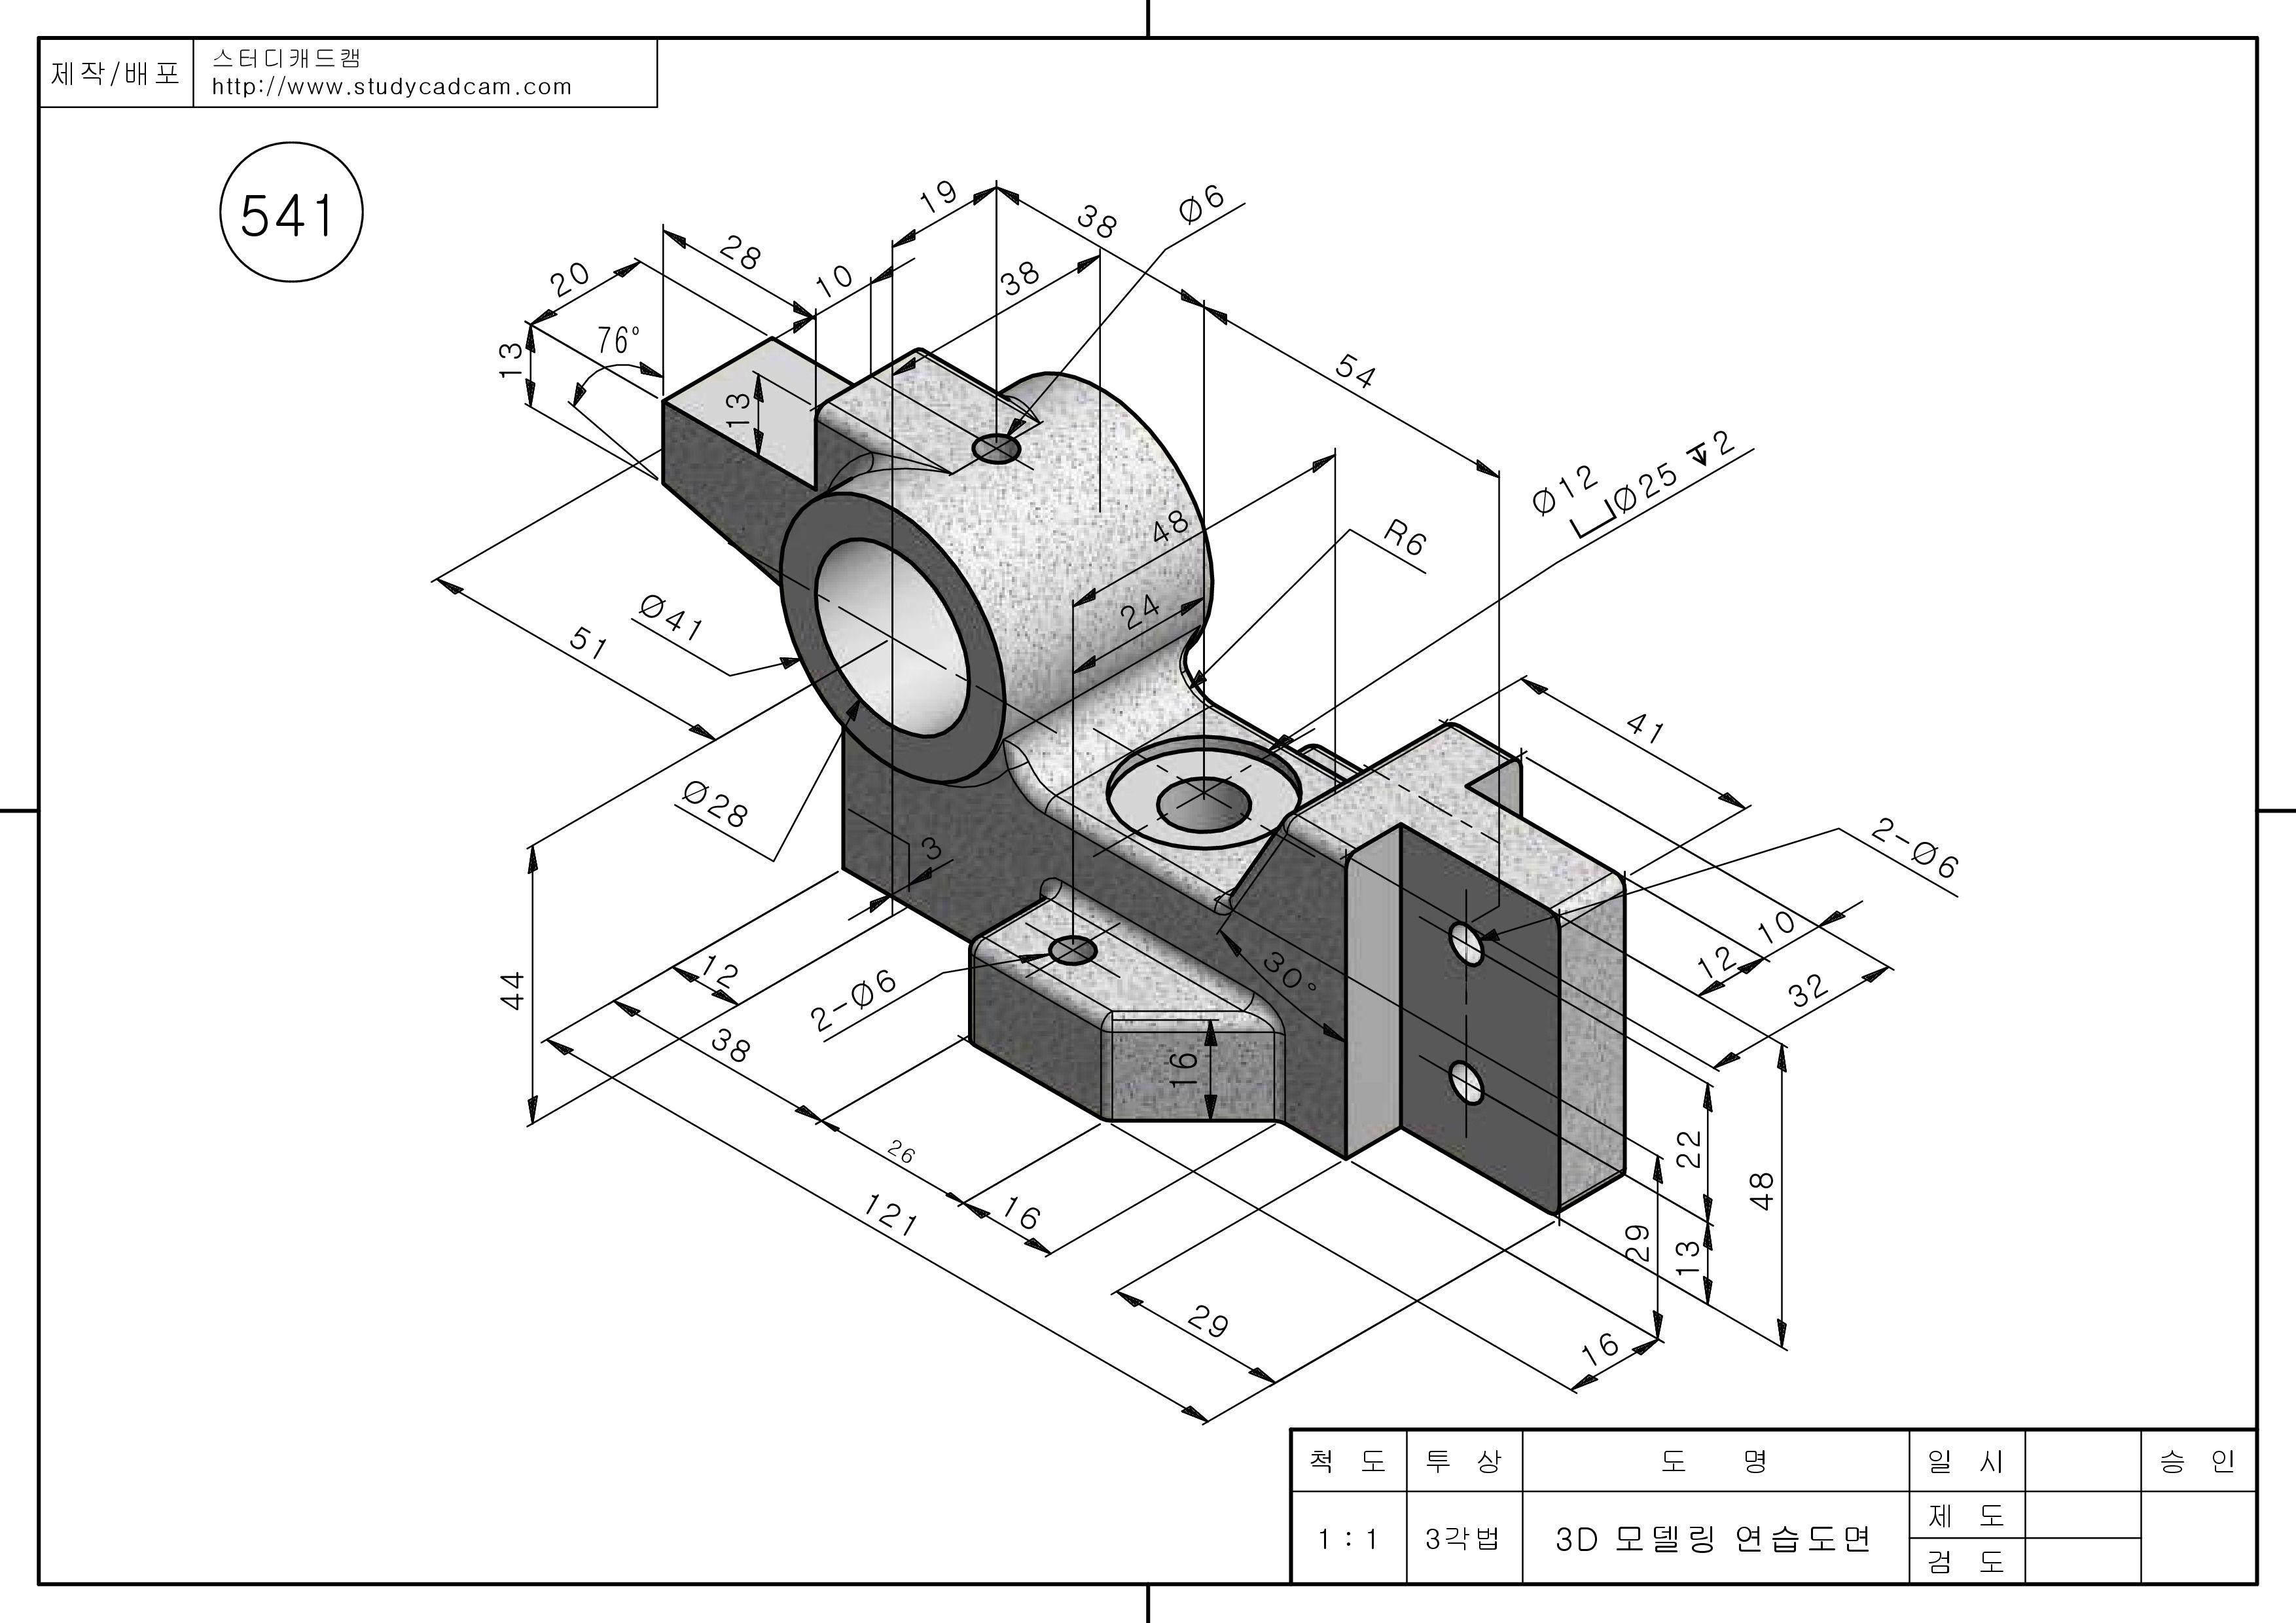 Pin By Fgnkrsc On My Drawings With Images Autocad Isometric